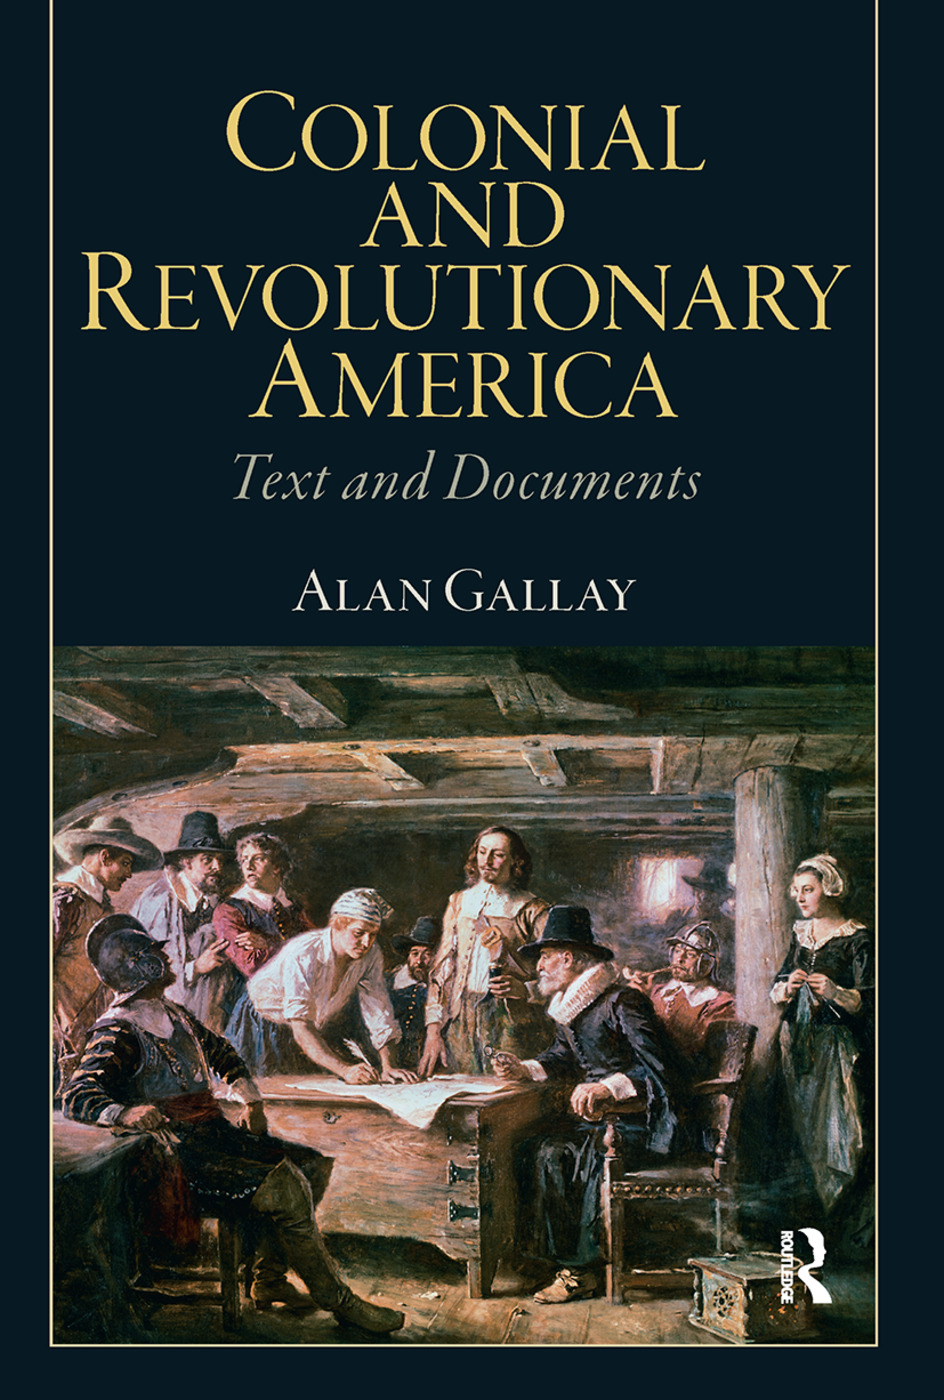 Colonial and Revolutionary America